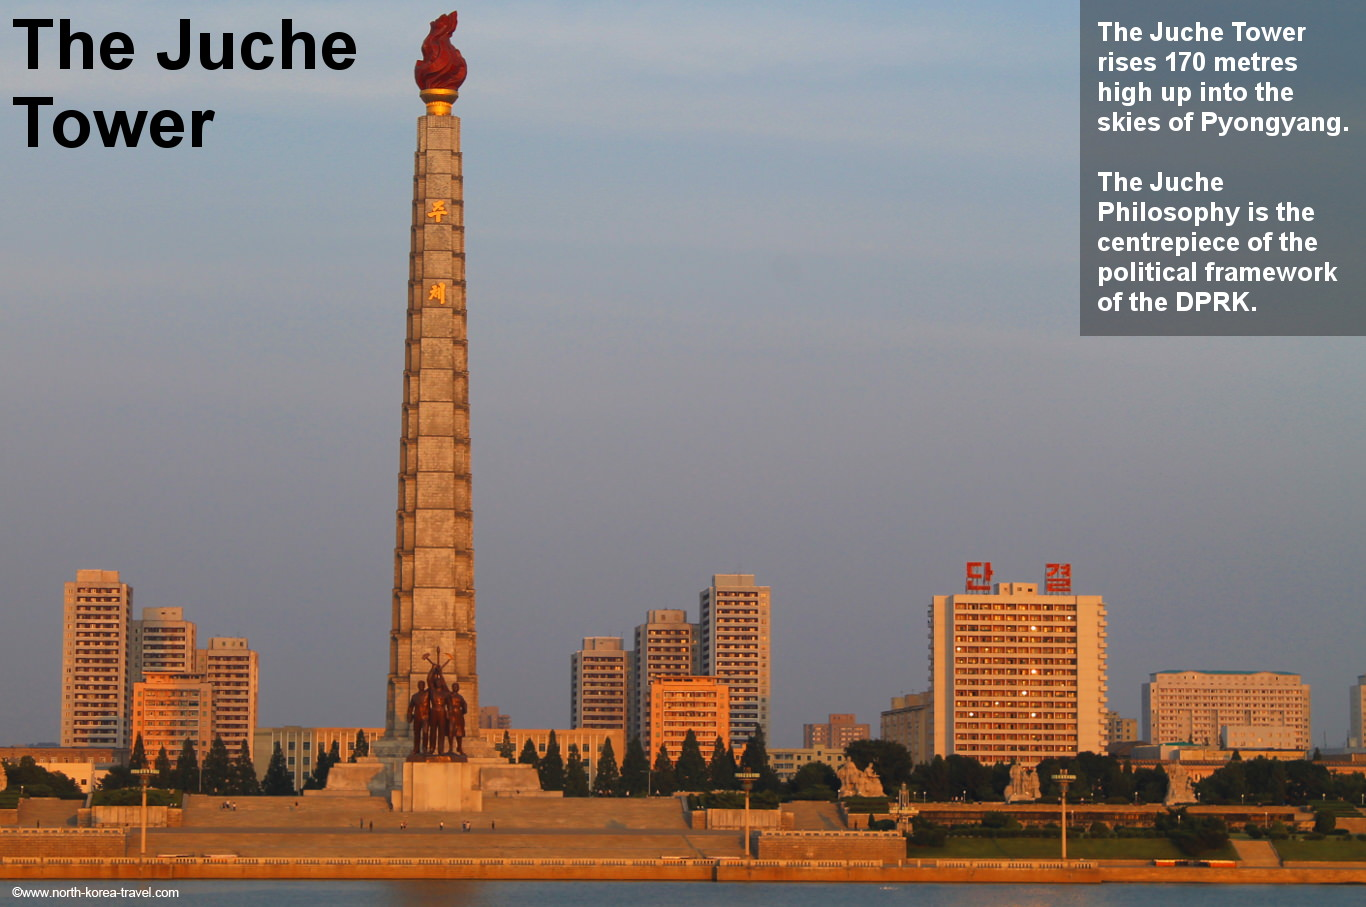 Juche Tower in Pyongyang across the Taedong River during sunset, North Korea